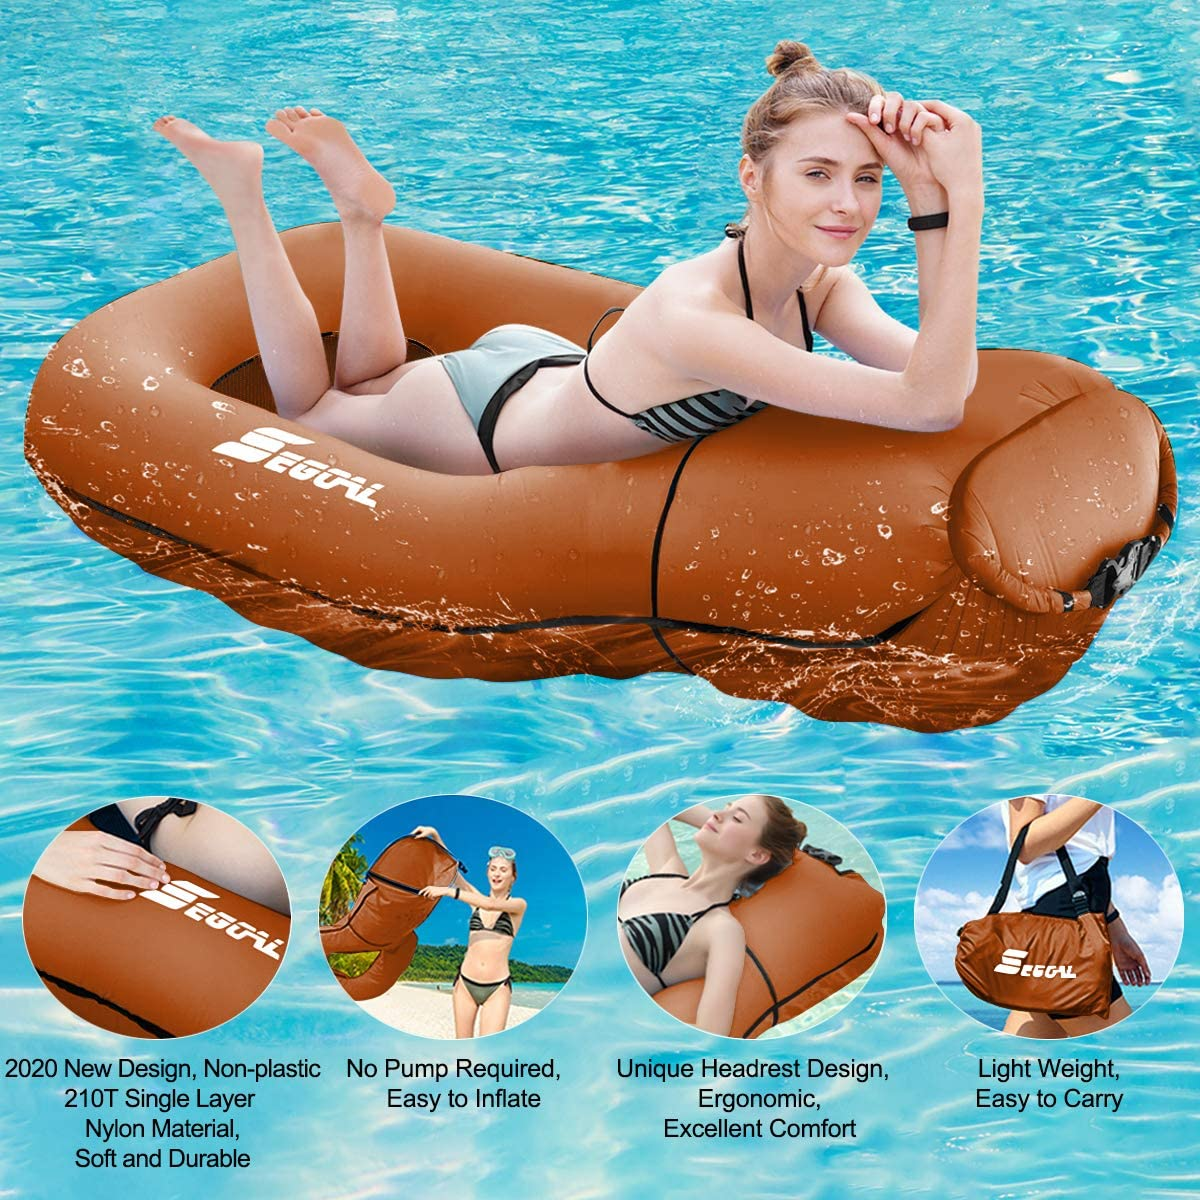 2020 Pool Floats Inflatable Floating Lounger Chair Water Hammock Raft Swimming Ring Pool Toy for Adults /& Kids 3 Seconds Filling The Air Lightweight Single Layer Nylon Fabric No Pump Required